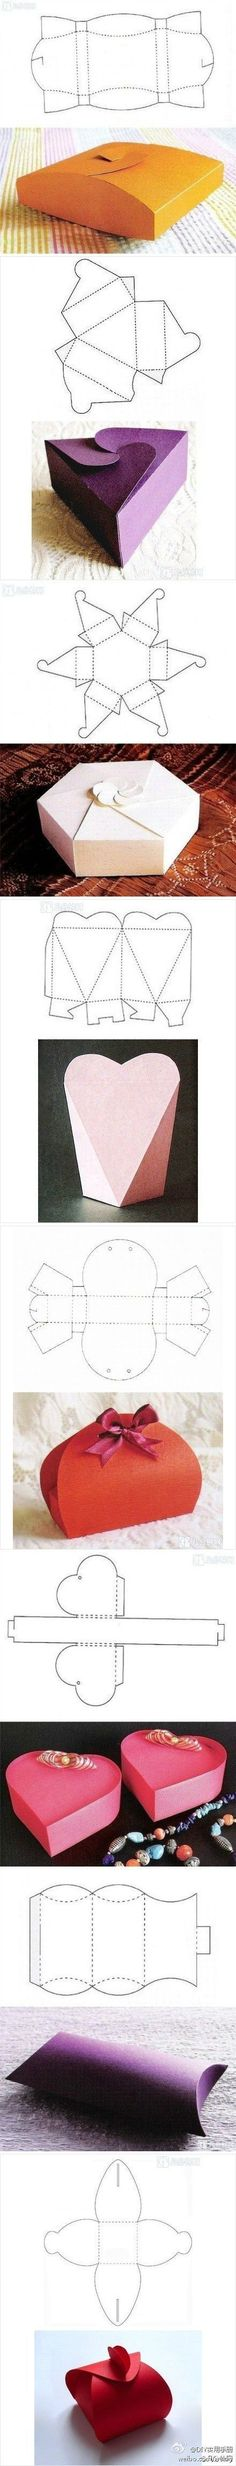 Templates To Make A Variety Of Shaped Boxes